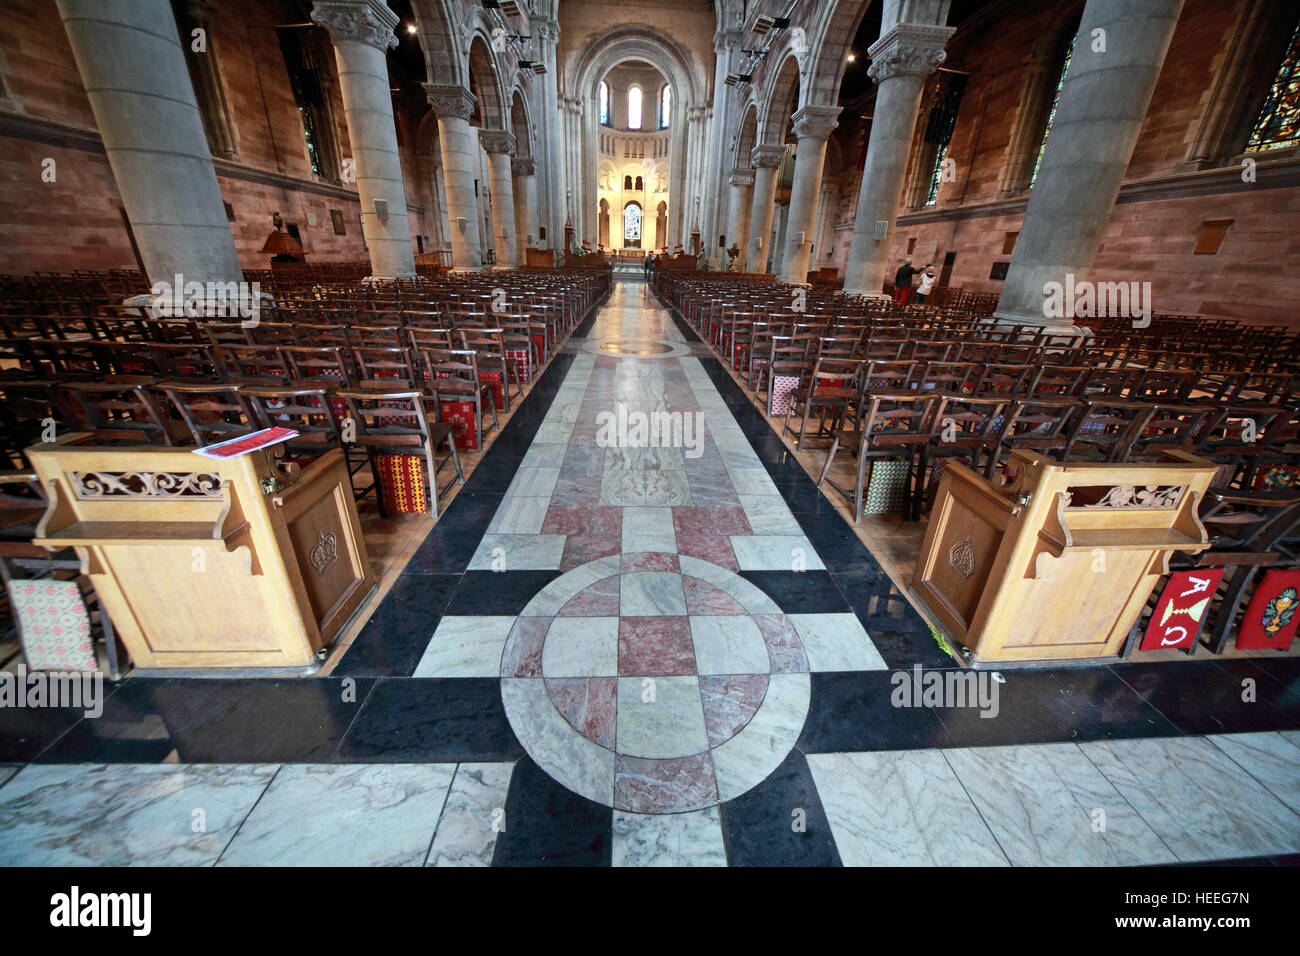 Inside,architecture,building,stone,arch,holy,St Annes,Belfast Cathedral,saint,Annes,panorama,religion,protestant,GoTonySmith,@HotpixUK,Tony,Smith,UK,GB,Great,Britain,United,Kingdom,Irish,British,Ireland,problem,with,problem with,issue with,NI,Northern,Northern Ireland,Belfast,City,Centre,Art,Artists,the,troubles,The Troubles,Good Friday Agreement,Peace,honour,painting,wall,walls,tribute,republicanism,Fight,Justice,West,Beal,feirste,martyrs,social,tour,tourism,tourists,urban,six,counties,6,backdrop,county,Antrim,Quarter,Buy Pictures of,Buy Images Of,Images of,Stock Images,Tony Smith,United Kingdom,Great Britain,British Isles